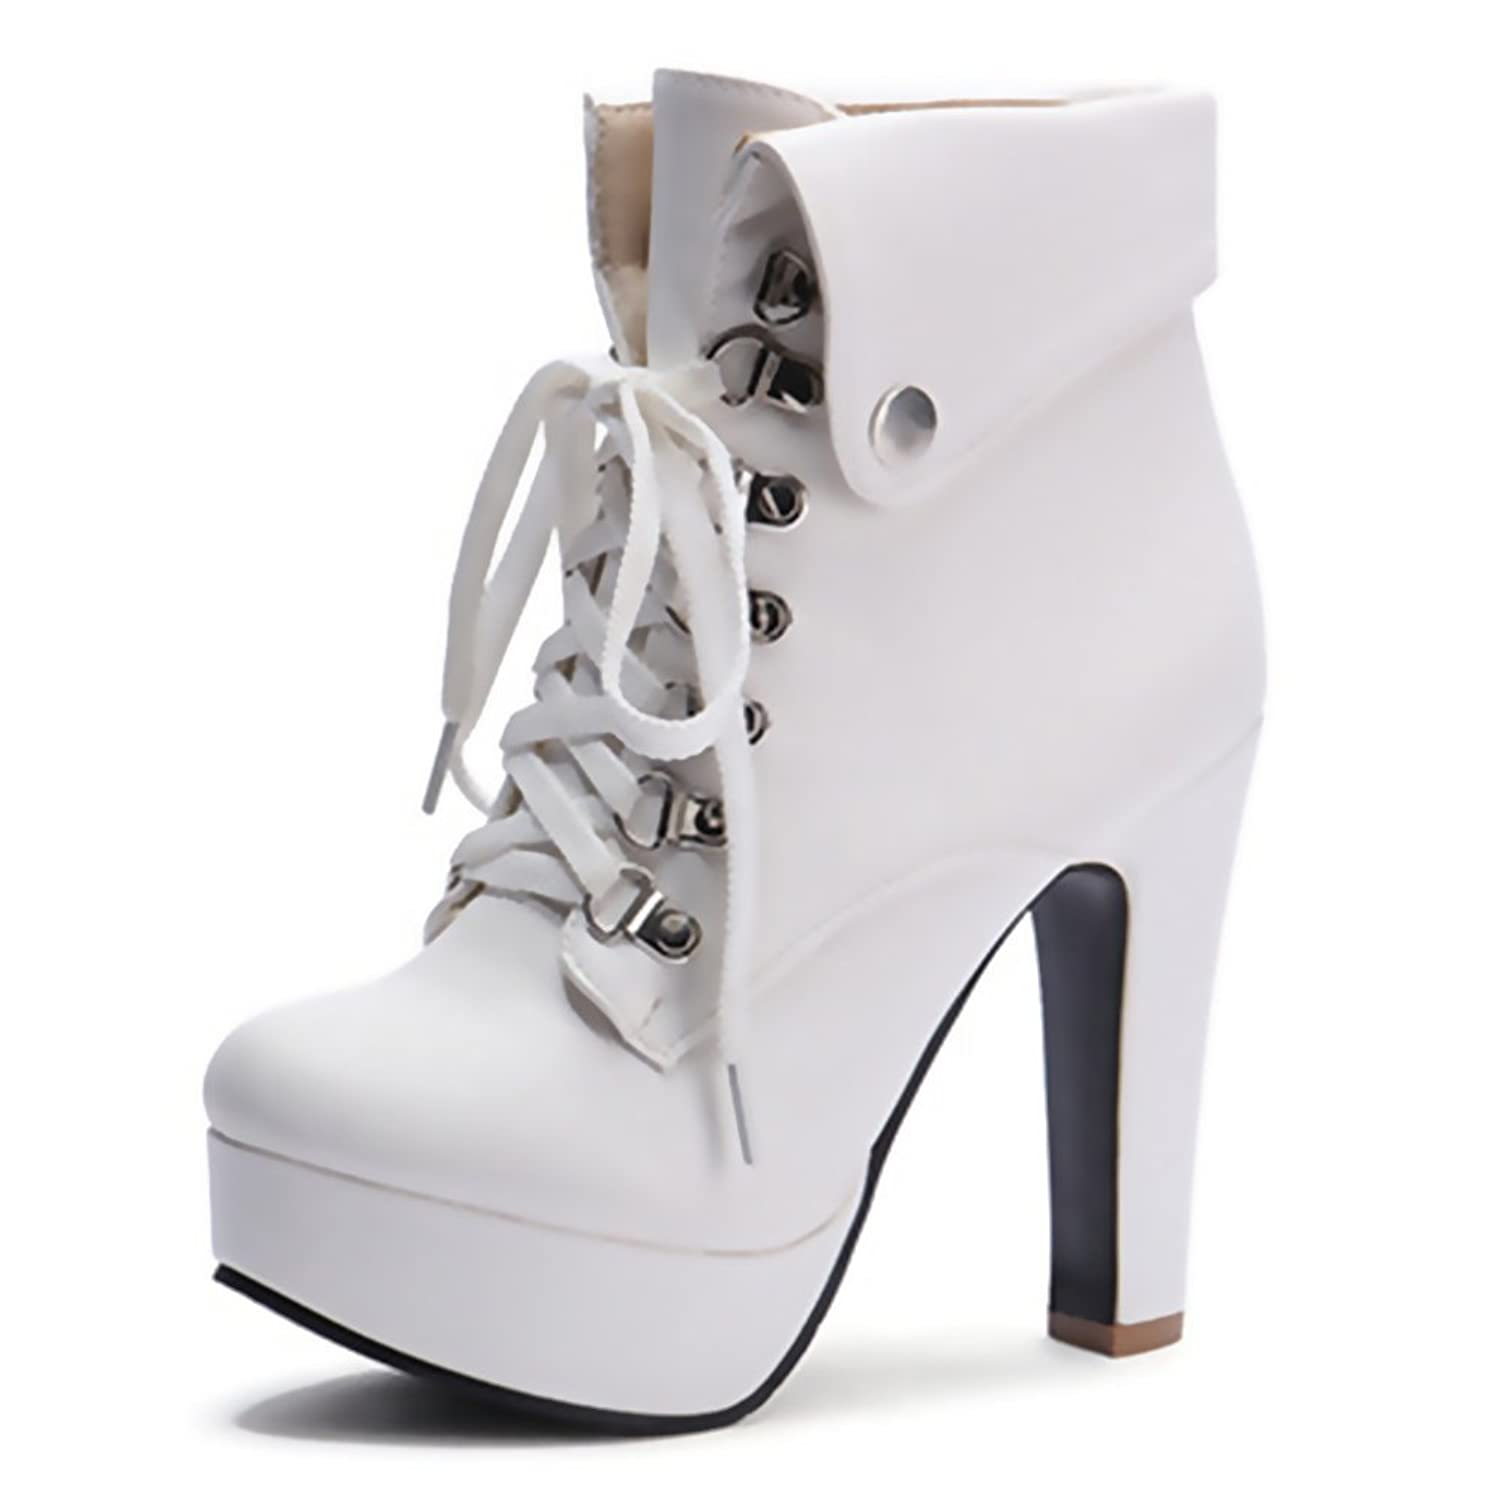 Chaussures compens es blanches taille 35 - Chaussure de securite blanche ...